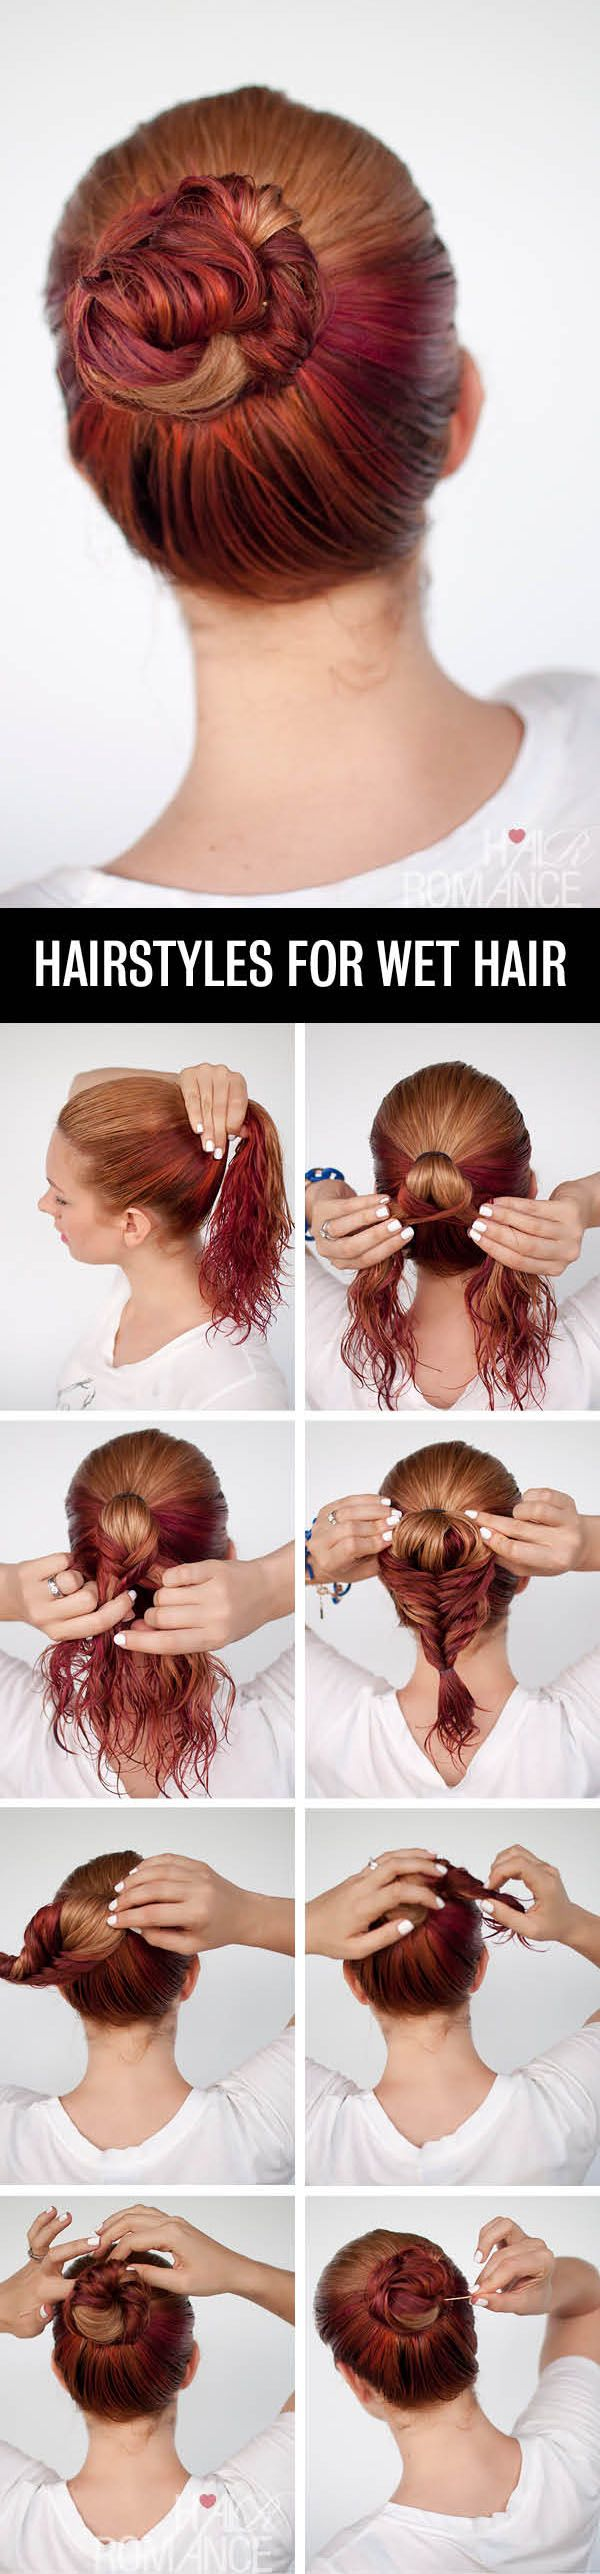 best hair tutorials images on pinterest hair dos easy